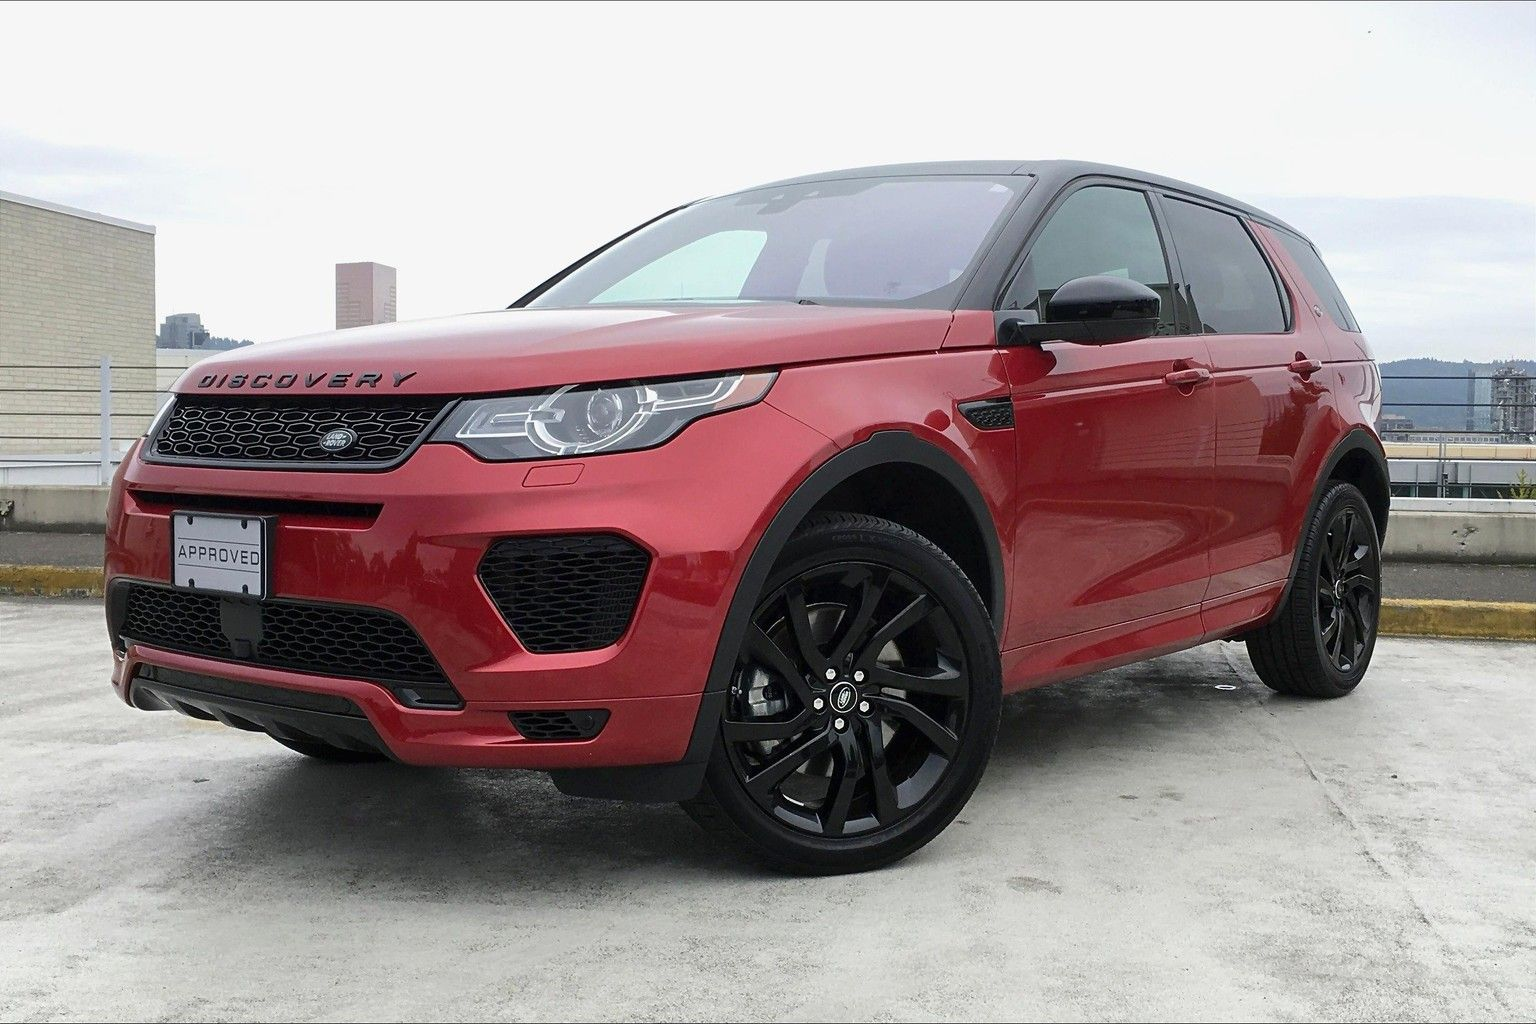 Used 2018 Land Rover Discovery Sport from Land Rover